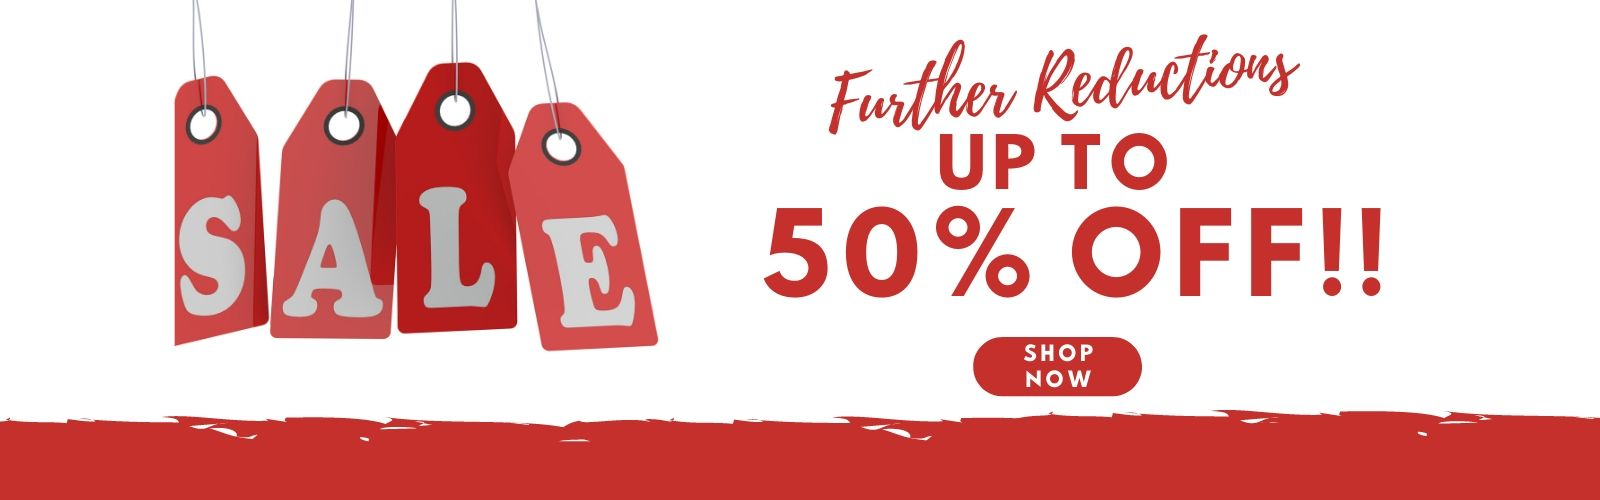 Further Reductions 50% Off